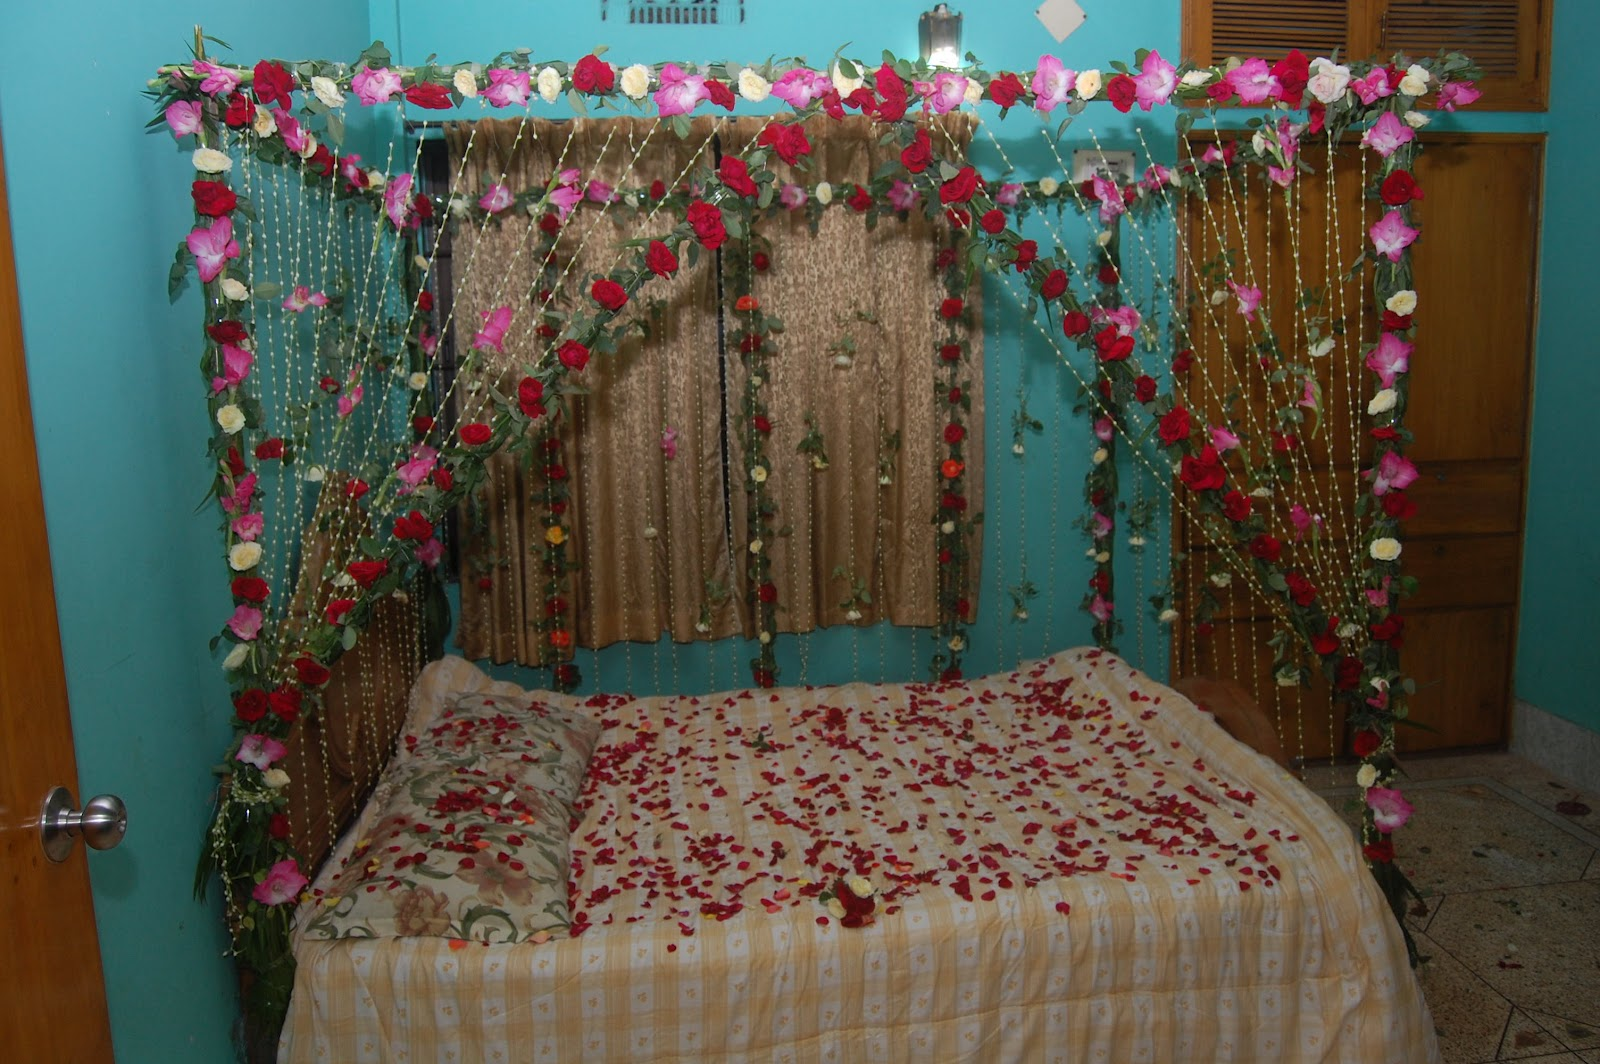 Bedroom decorating ideas for wedding night - Flower Beation First Night Bed Room Photo 478630 Picture And First Night Bedroom Decoration Bedroom